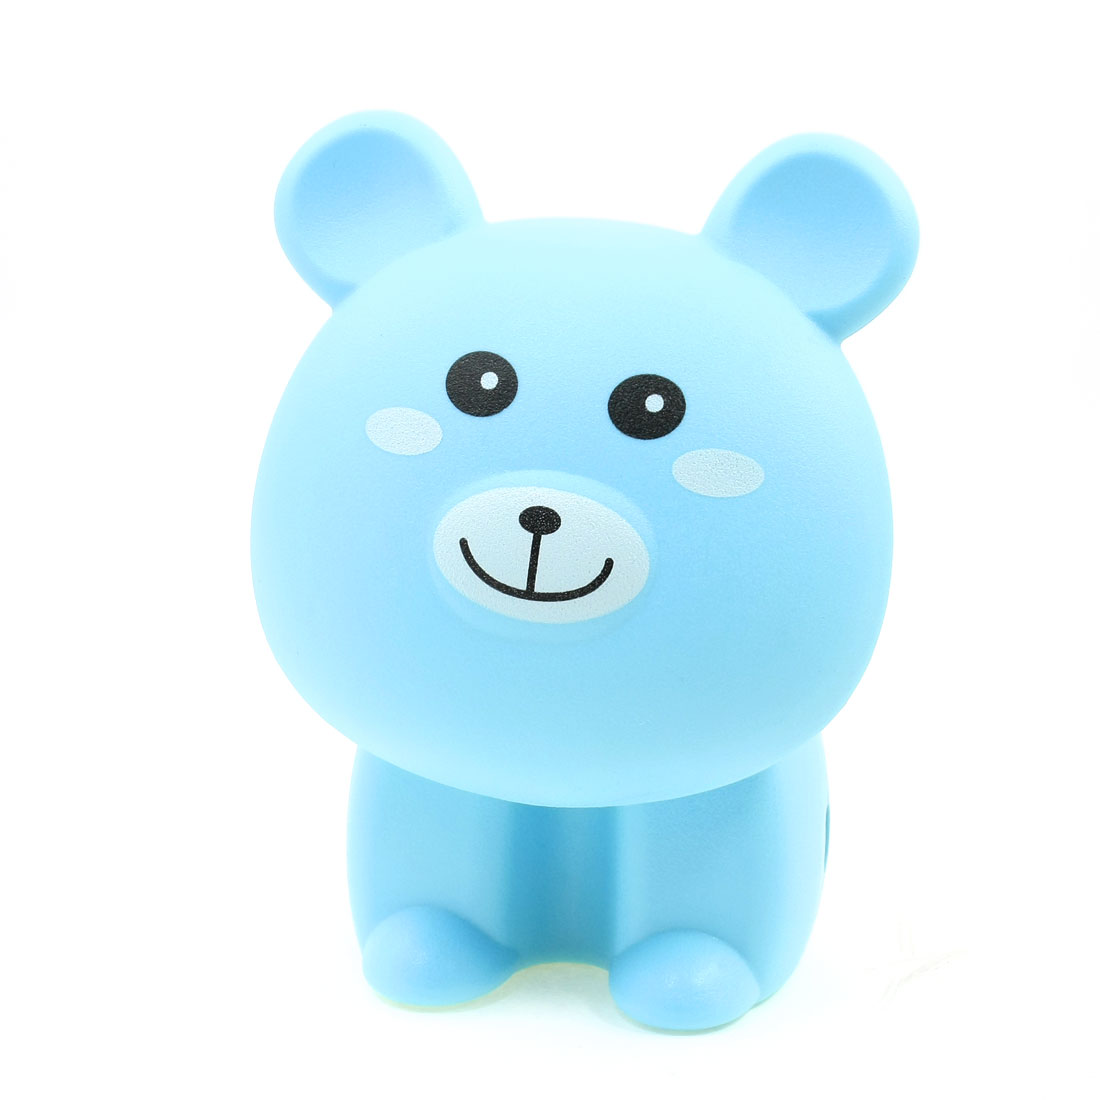 US Plug AC 220V Blue Plastic Bear Shaped 16 White LED Rechargeable Desk Lamp w Cable